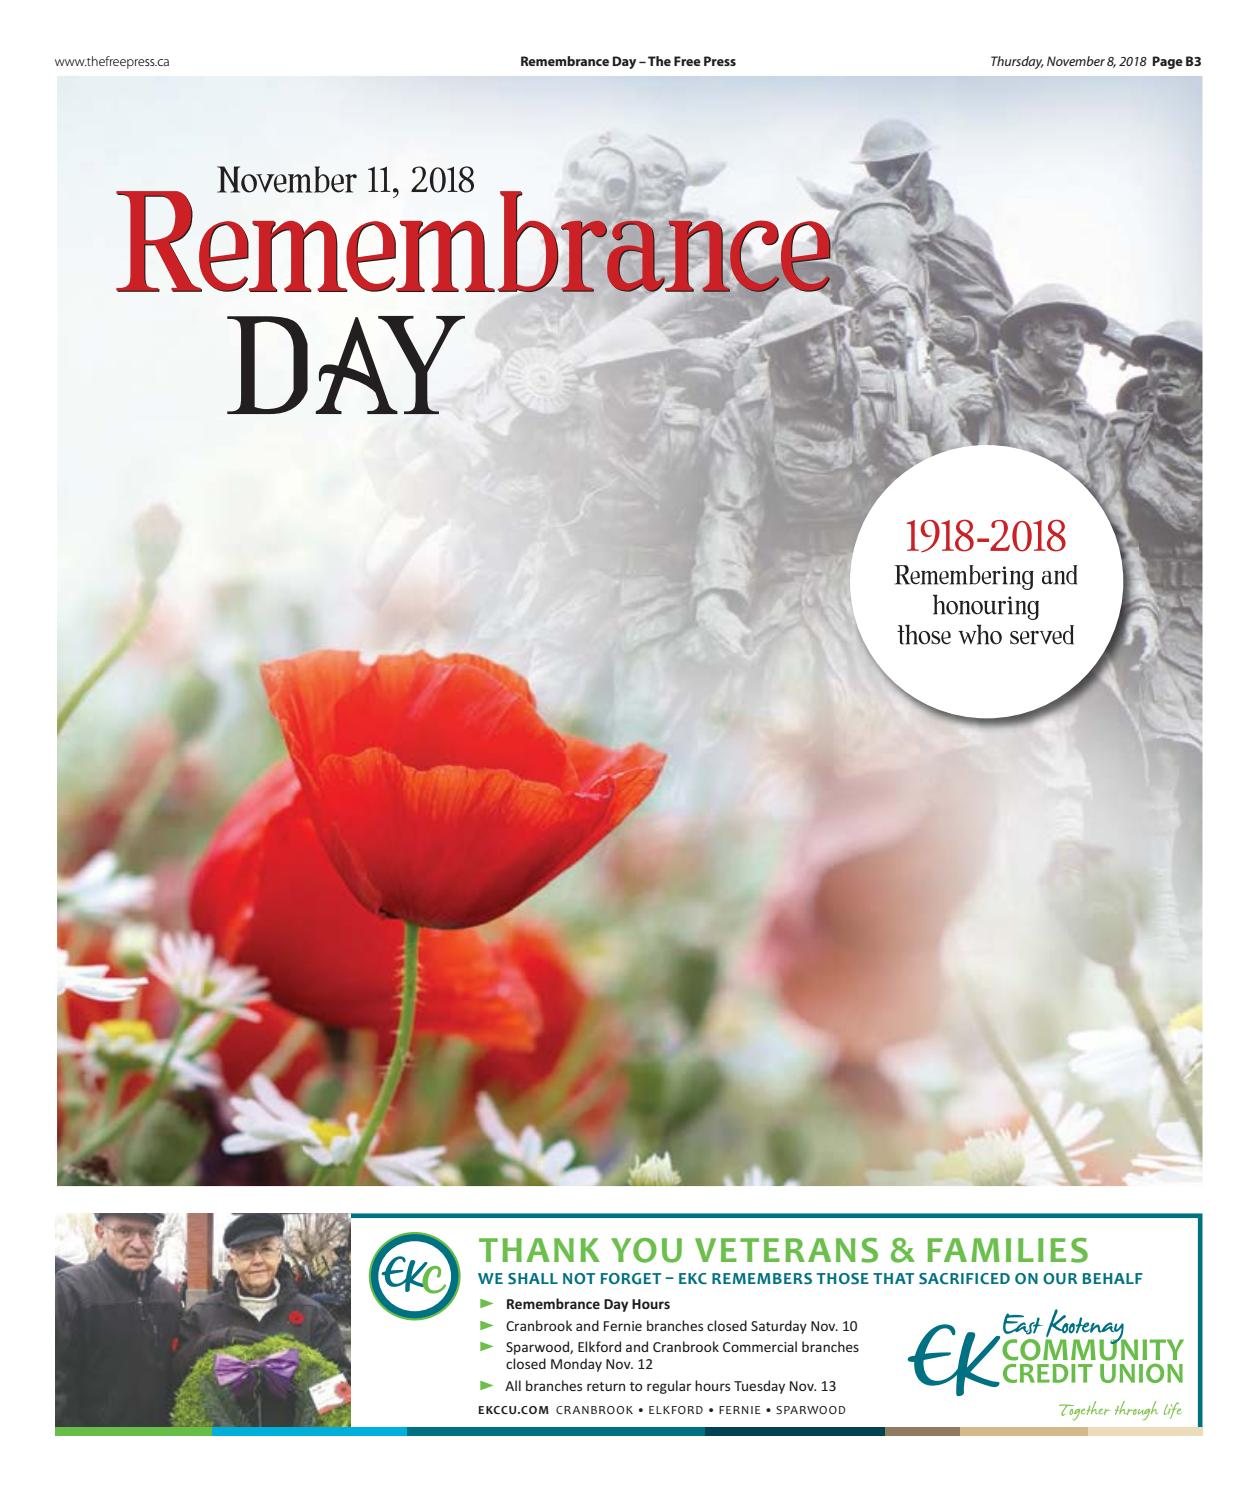 Remembrance Day 2018 by The Free Press, Fernie - issuu